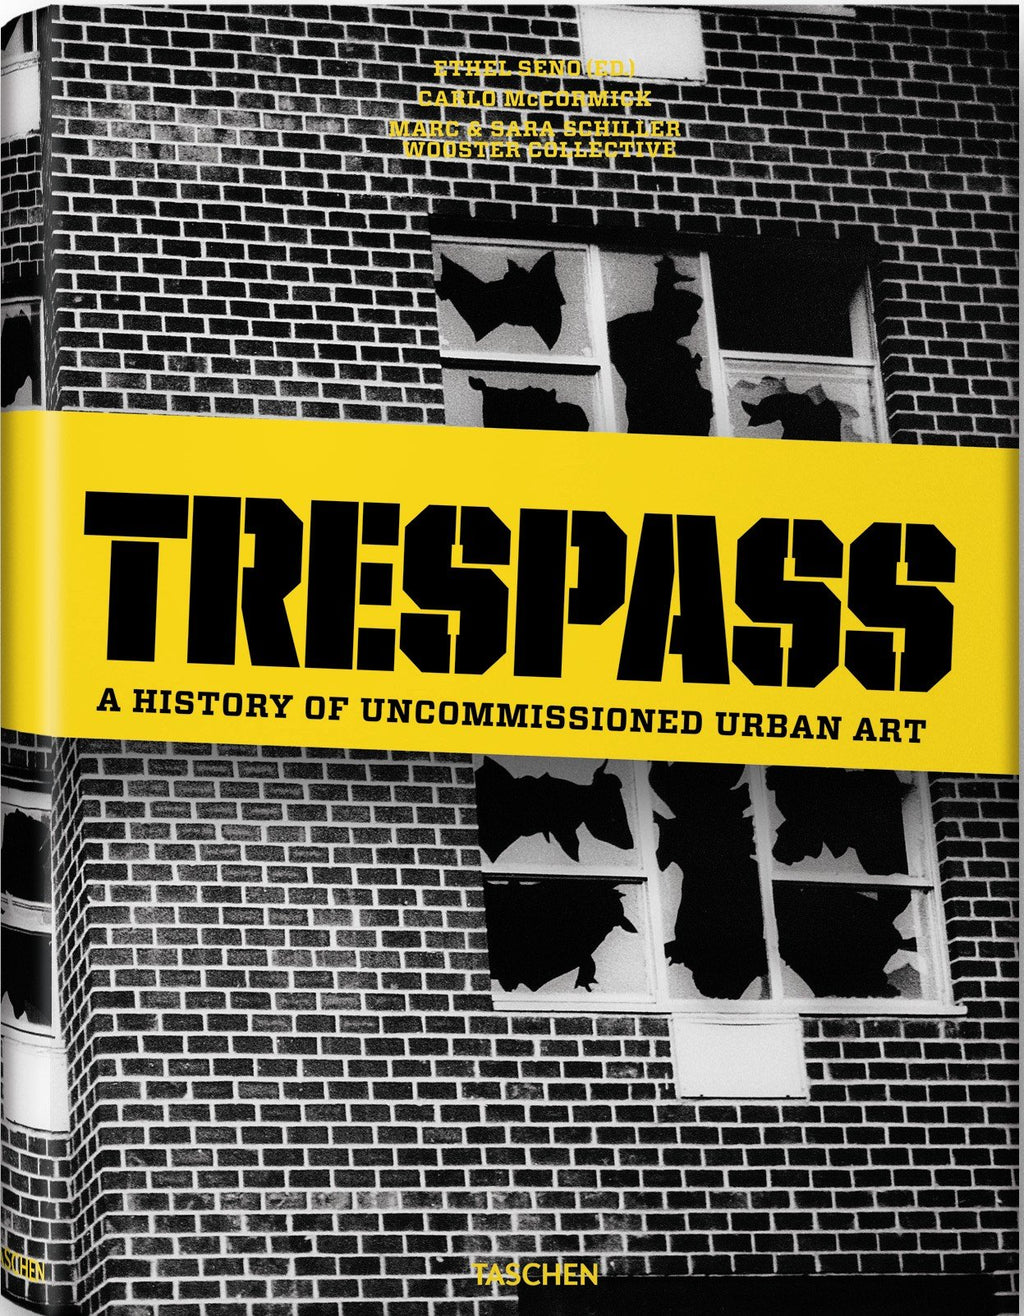 Tresspass: A History of Uncommissioned Urban Art